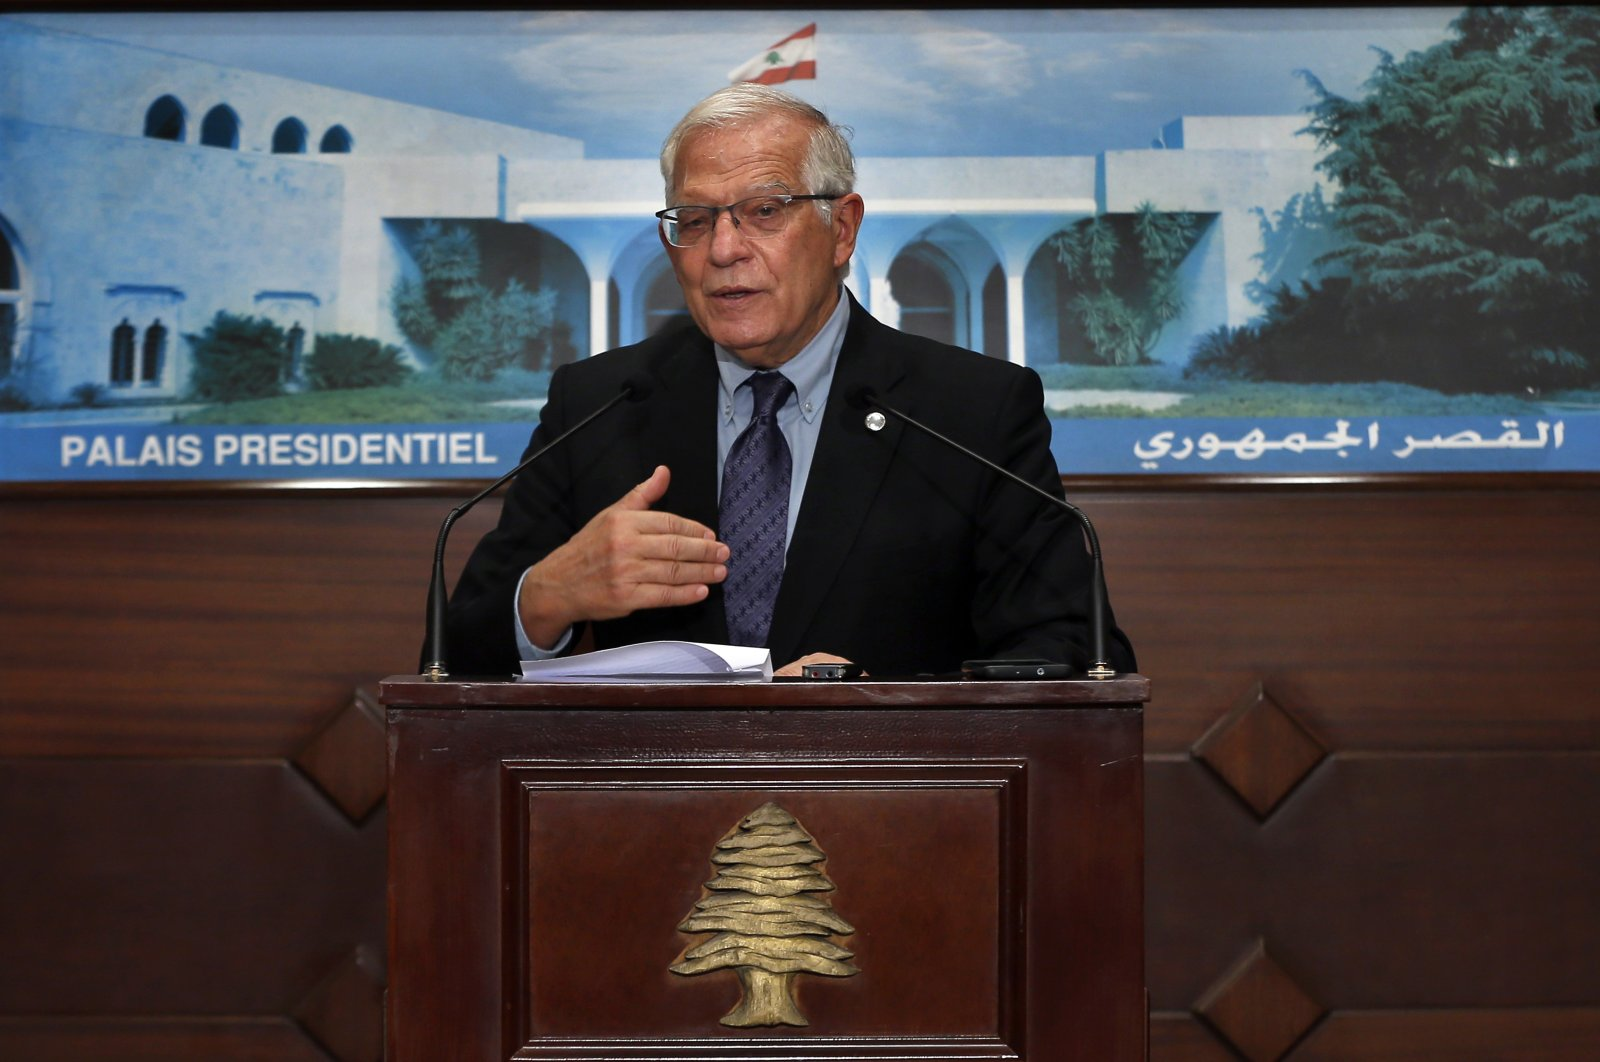 European Union foreign policy chief Josep Borrell speaks during a press conference after his meeting with Lebanese President Michel Aoun at the Presidential Palace in Baabda, east of Beirut, Lebanon, June 19, 2021. (AP Photo)